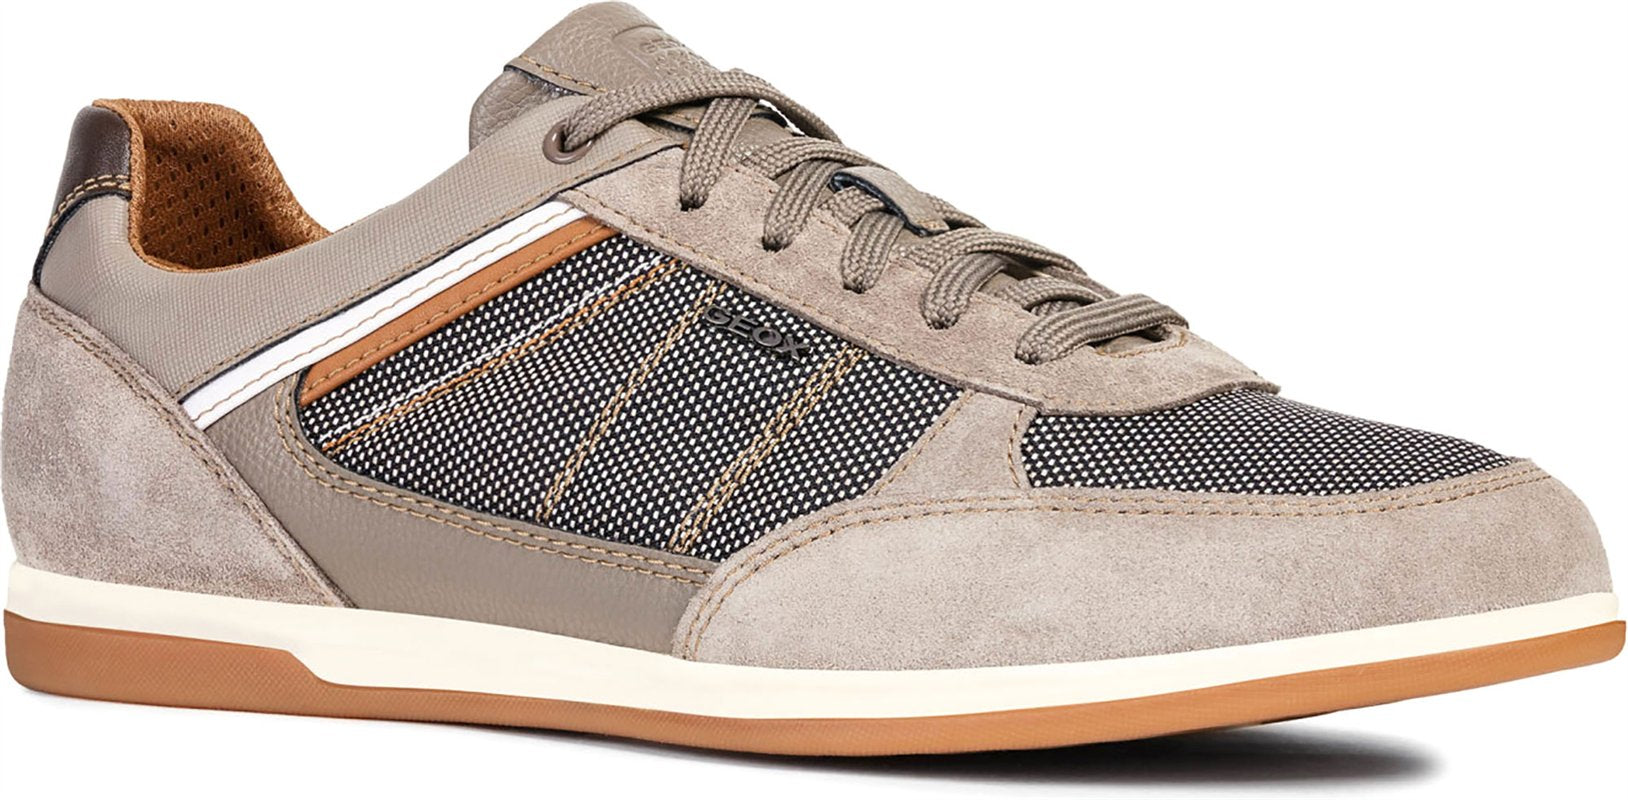 Geox Renan Suede and Textile Sneakers